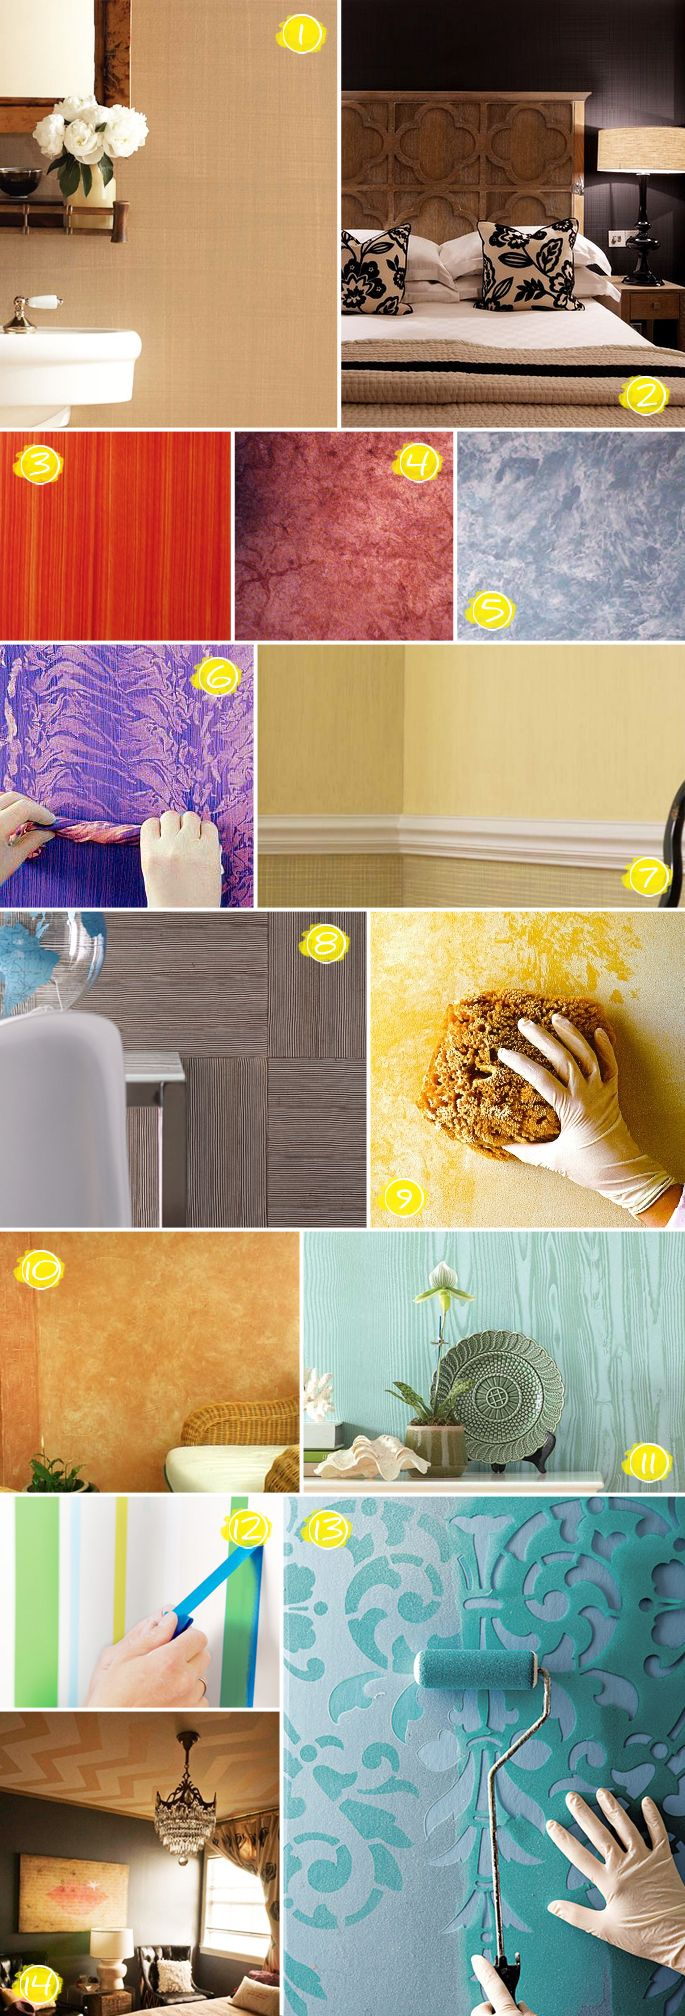 Textured Wall Painting Ideas: From Faux Wood to Linen Effects | Tips ...